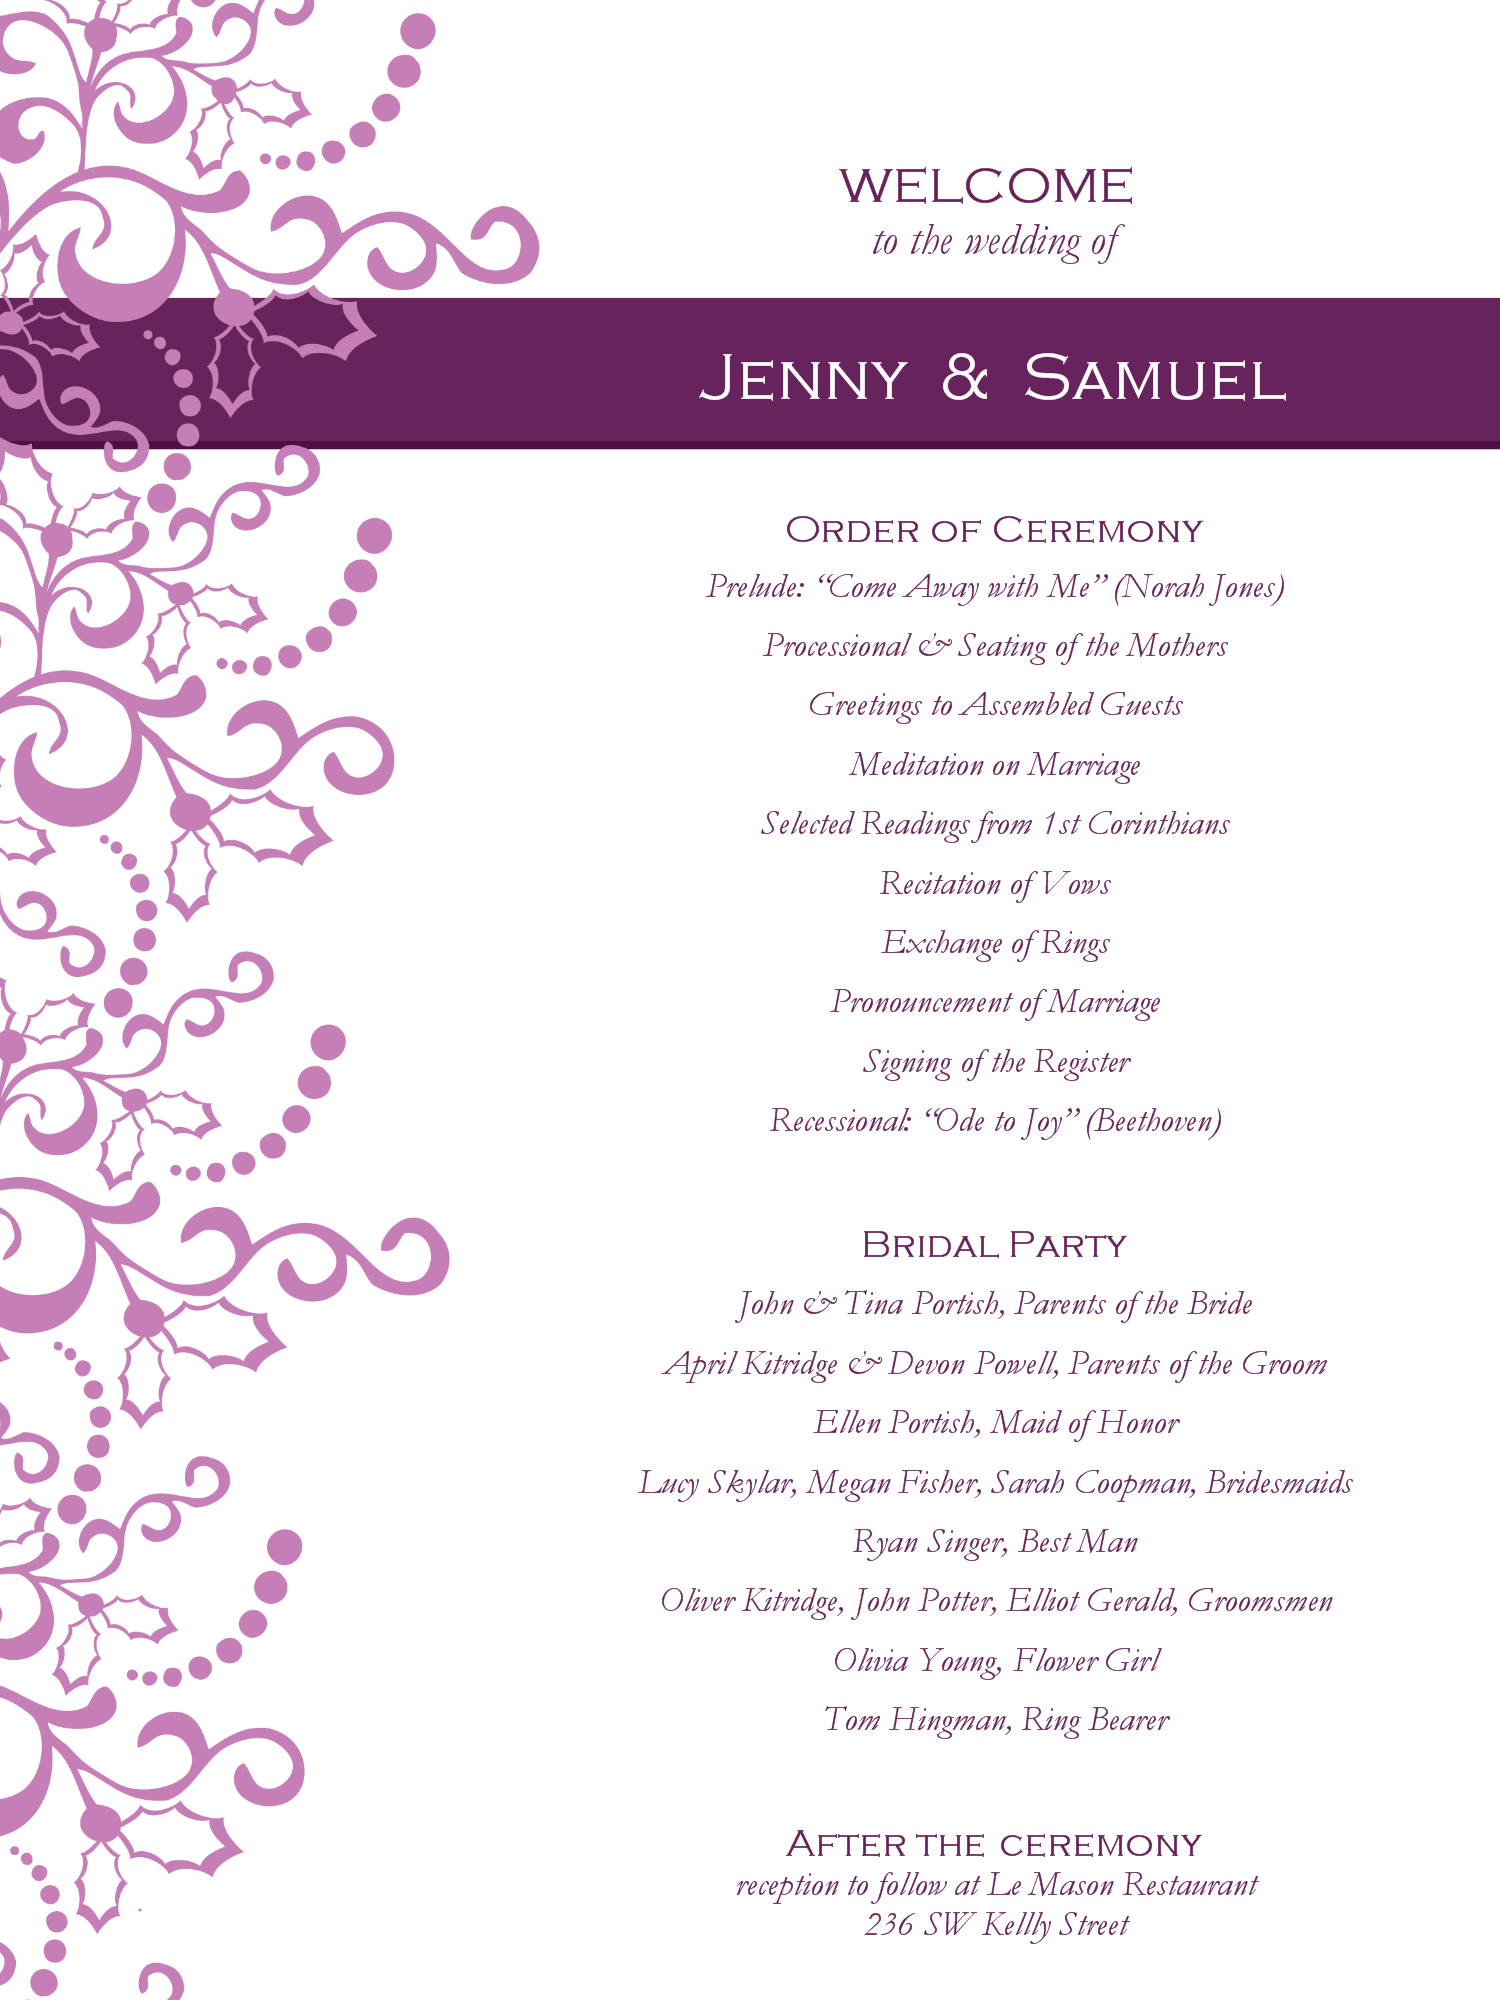 046 Wedding Program Template Free Printable Ideas Romance.